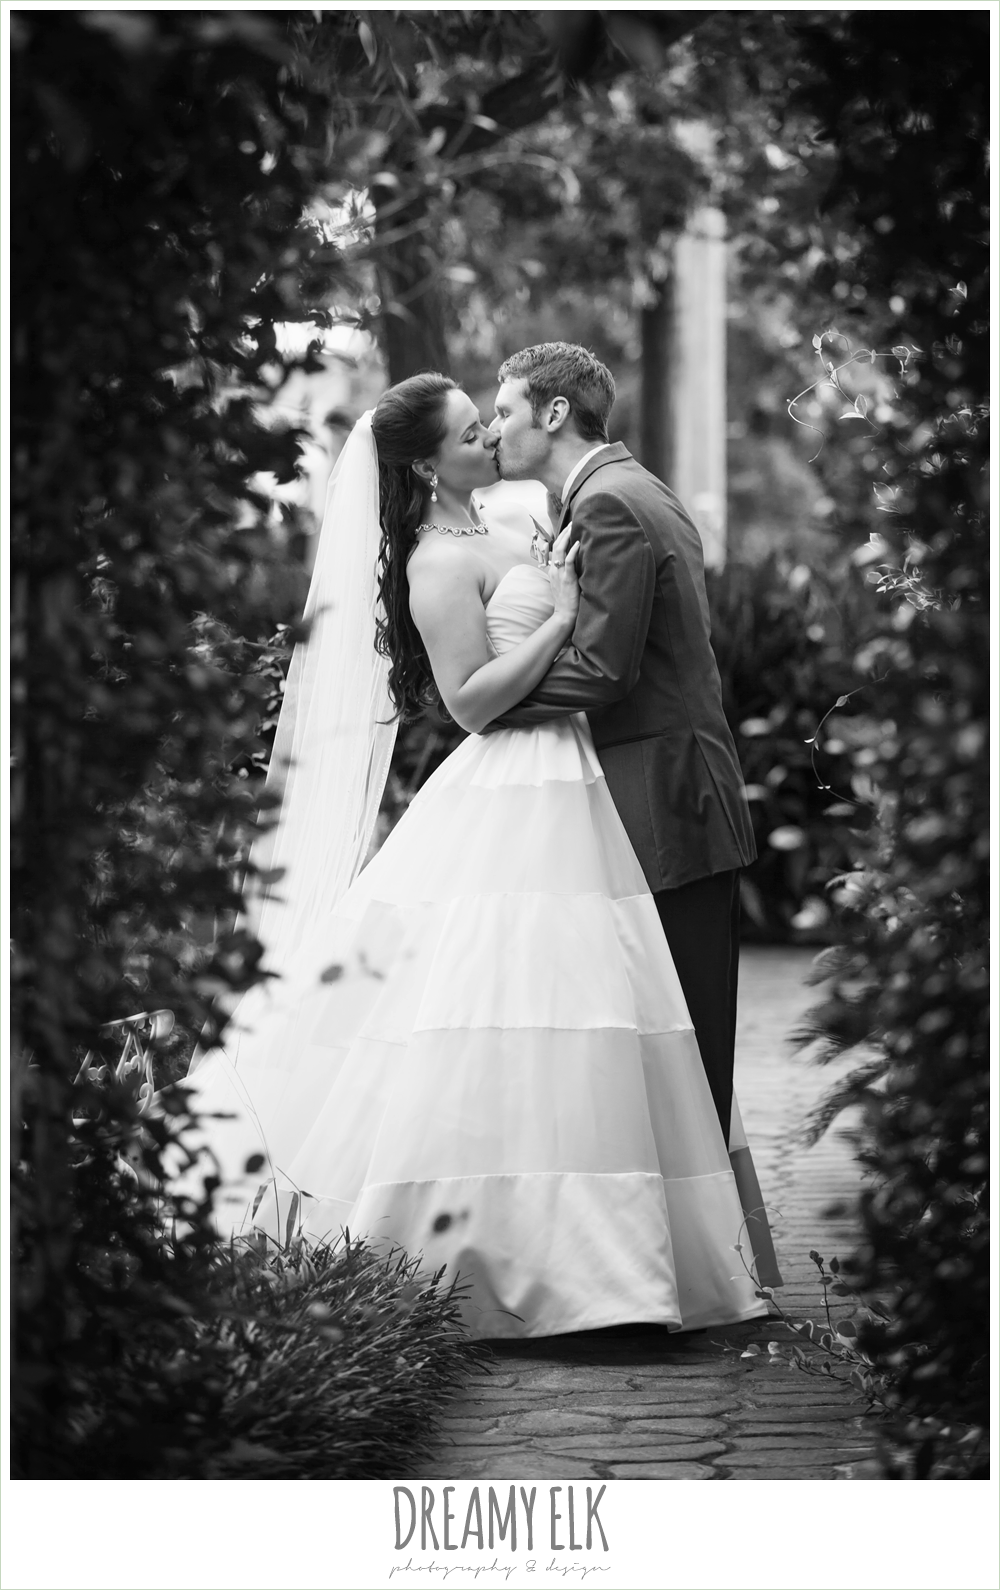 outdoor bride and groom portraits, sweetheart strapless wedding dress, heather's glen summer wedding photo, houston, texas {dreamy elk photography and design}